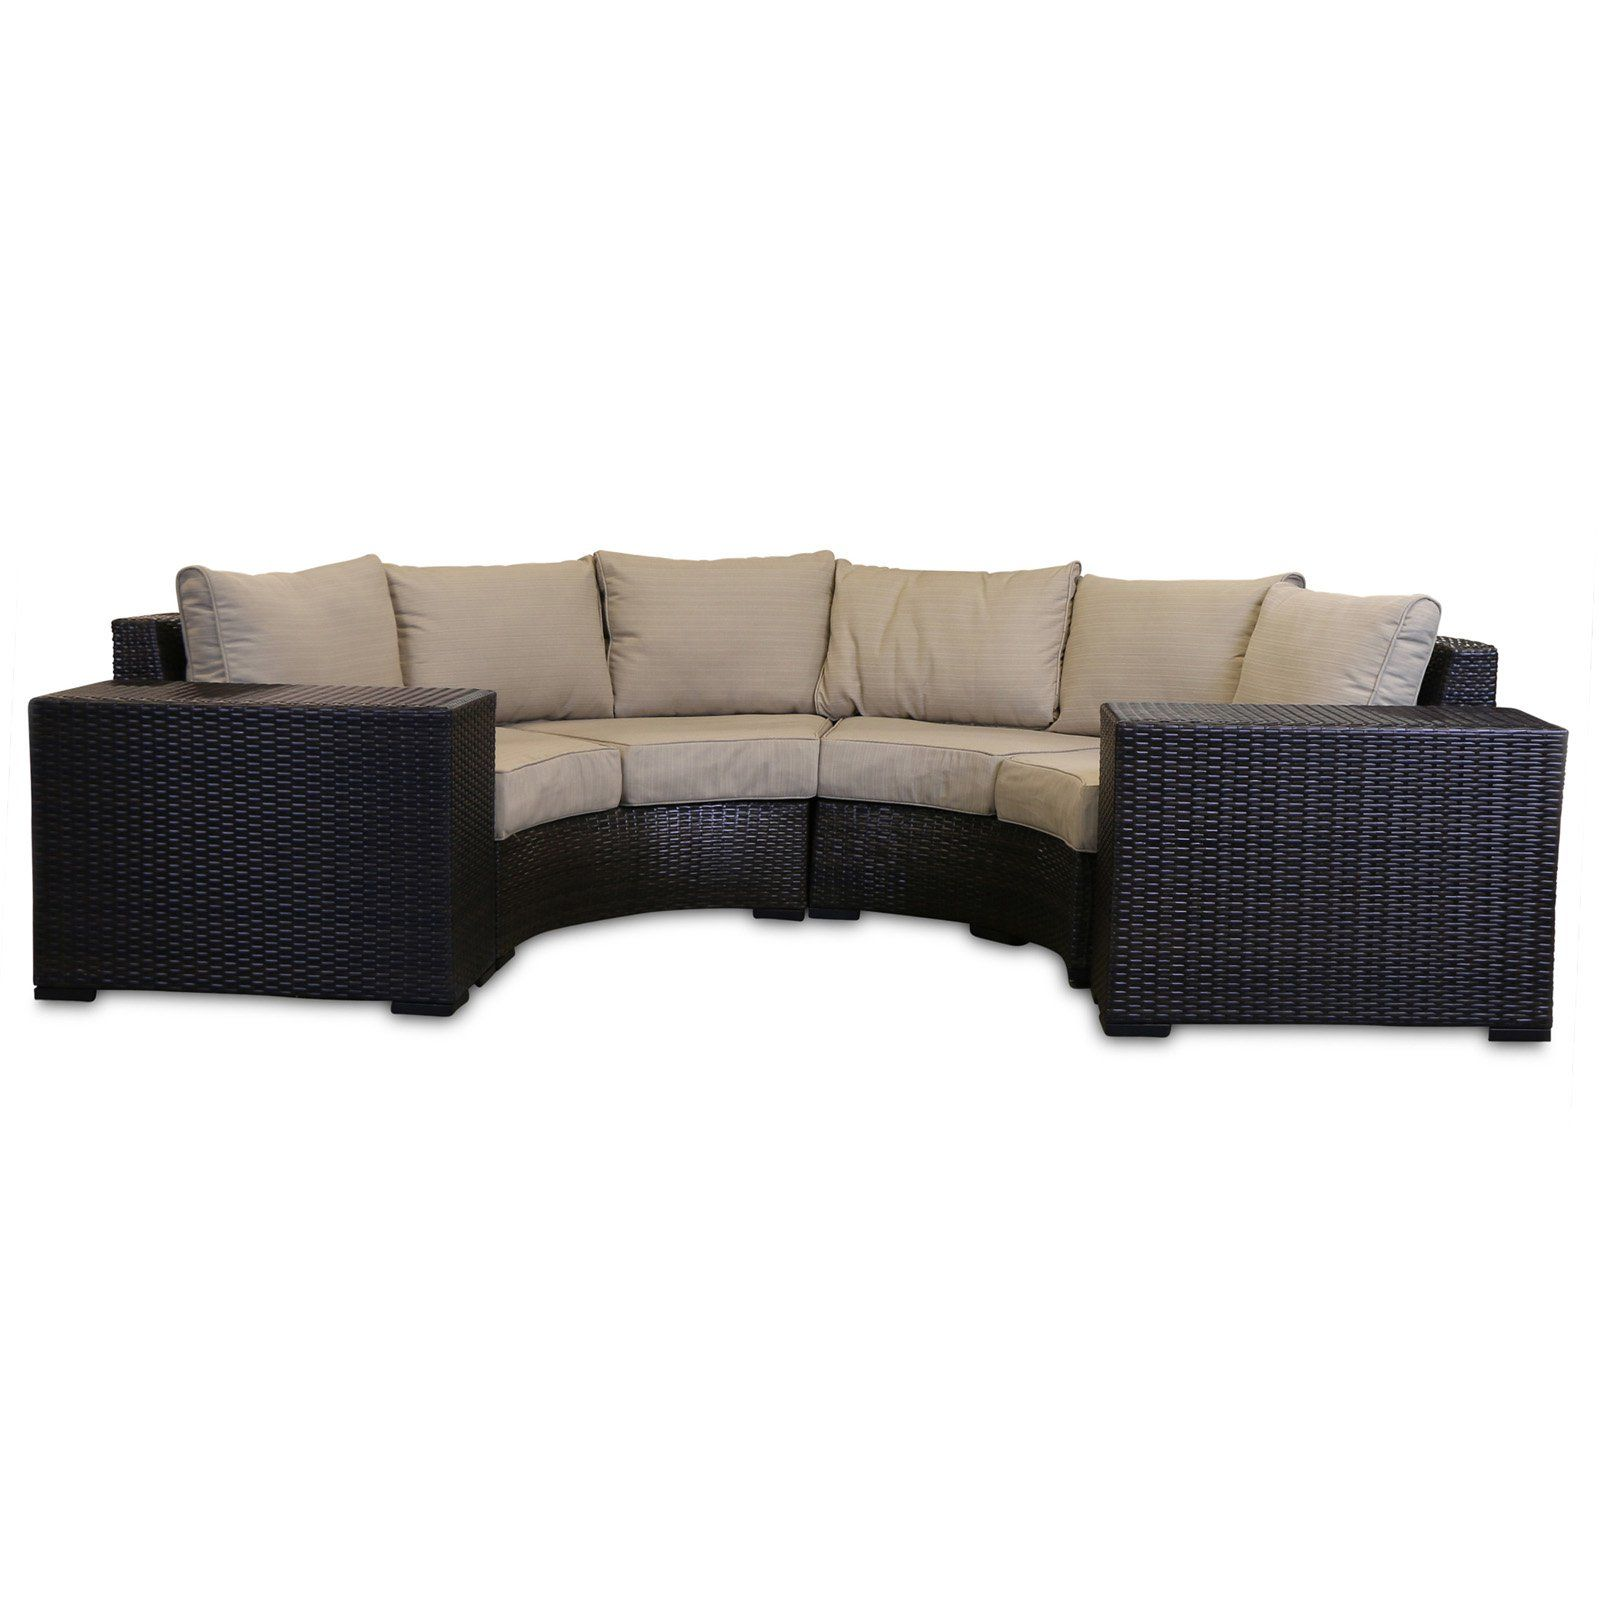 Wicker 4 Piece Curved Outdoor Sectional